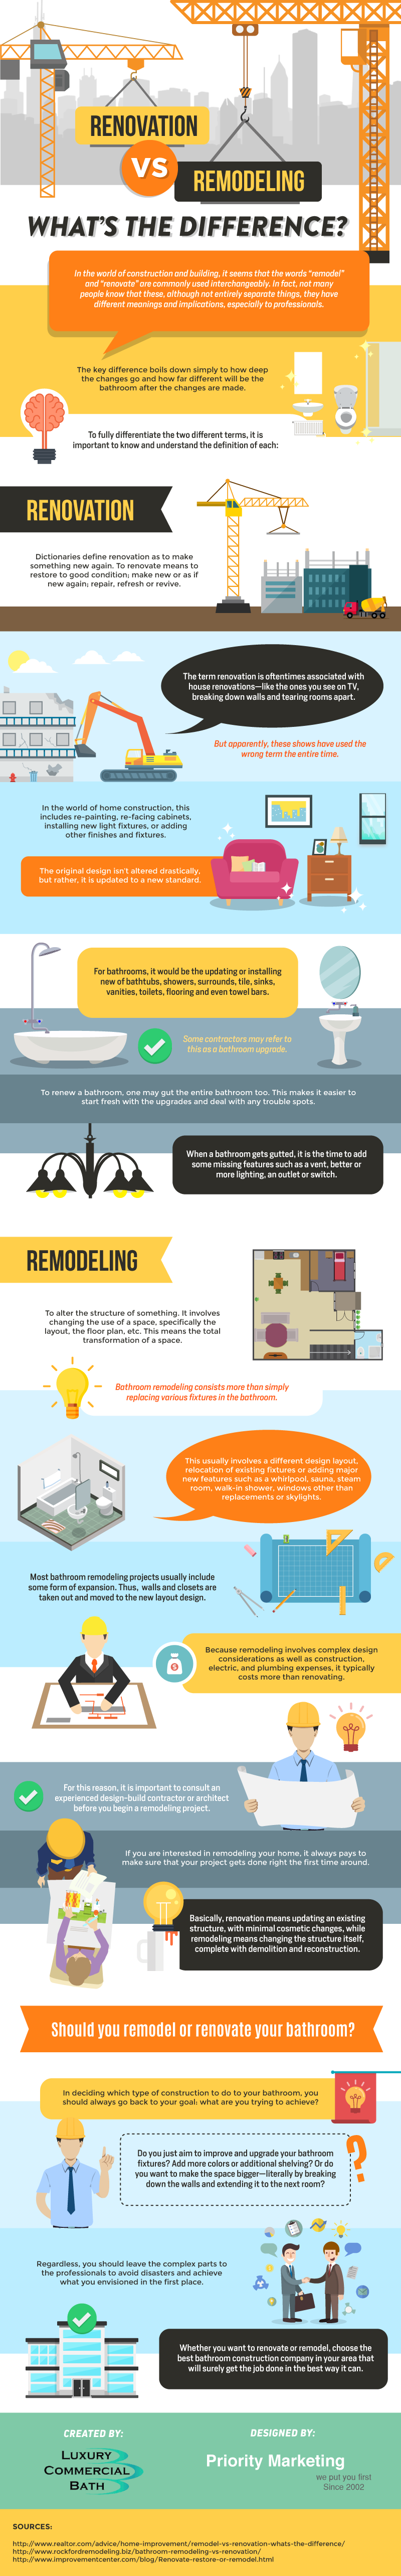 The Difference Between 'Renovation' and 'Remodeling' - Infographic